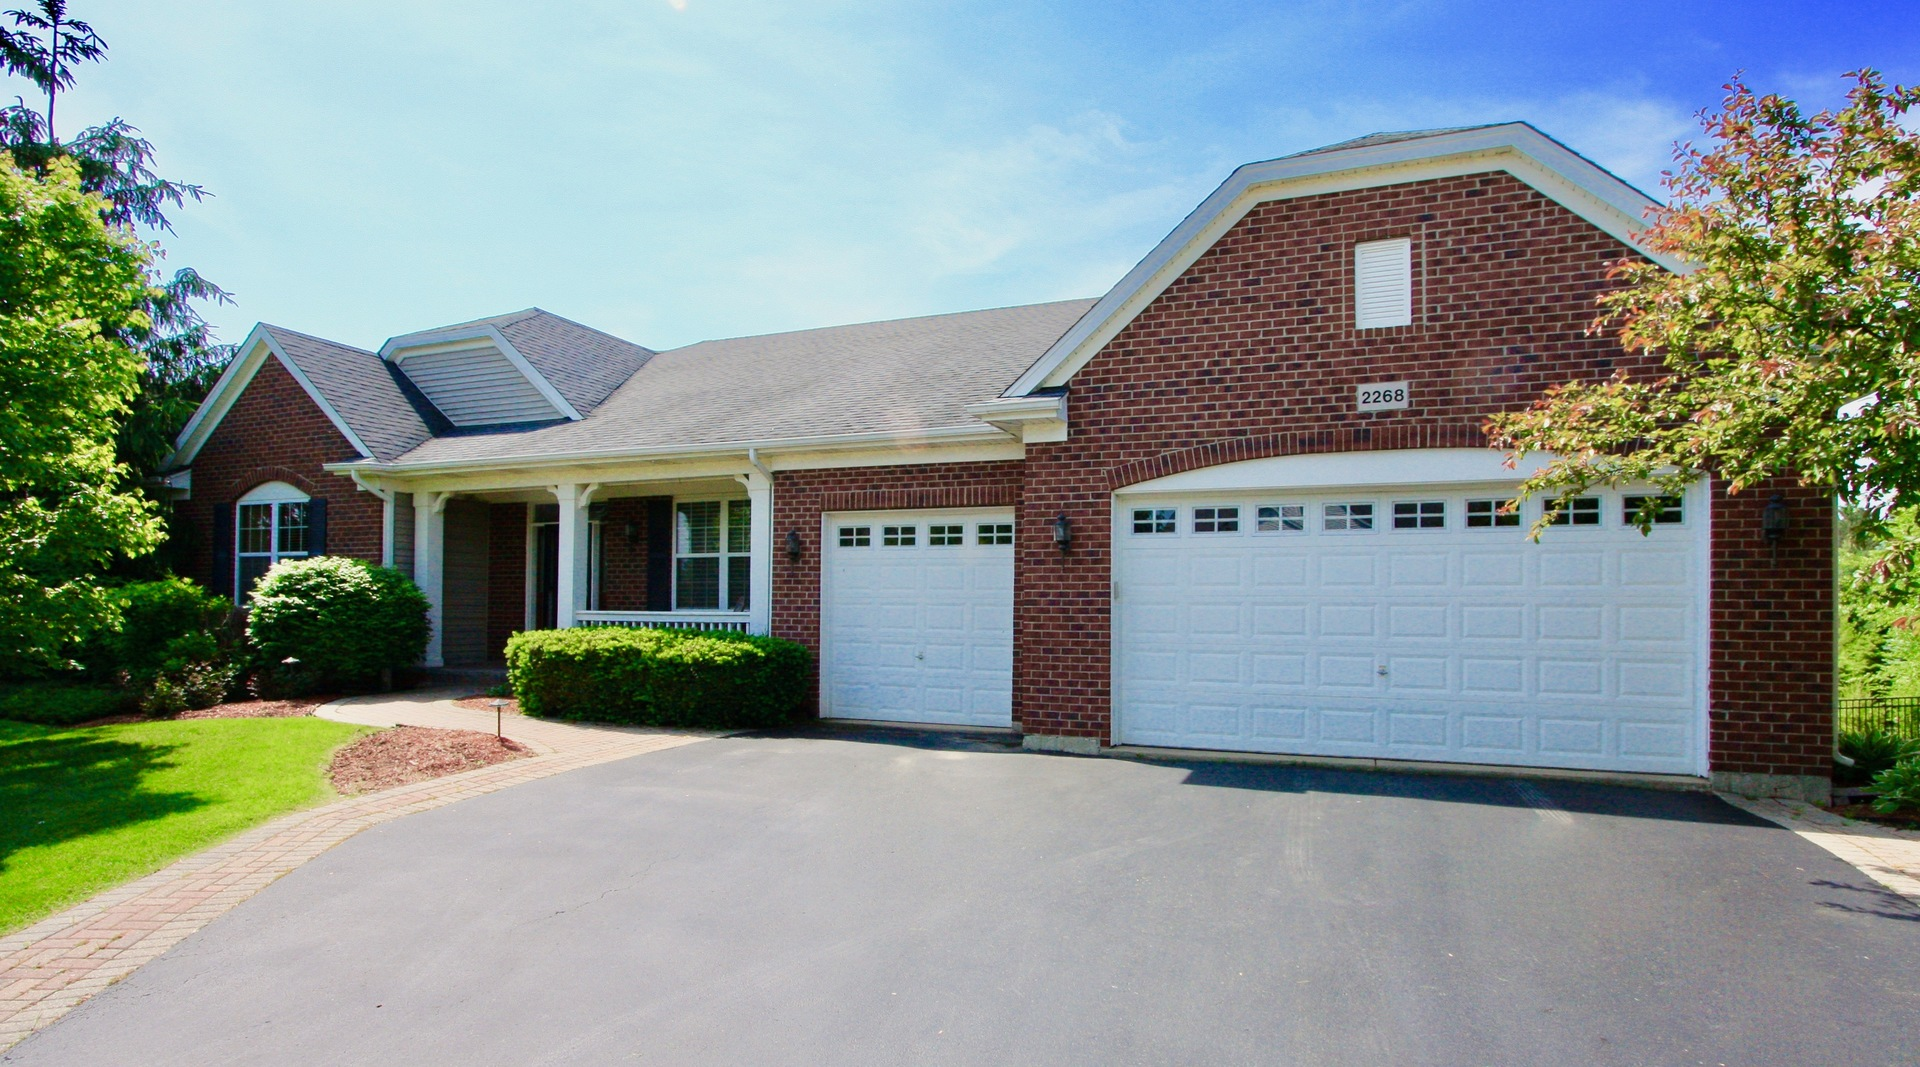 2268 Clearbrook Court, Wauconda, Illinois 60084